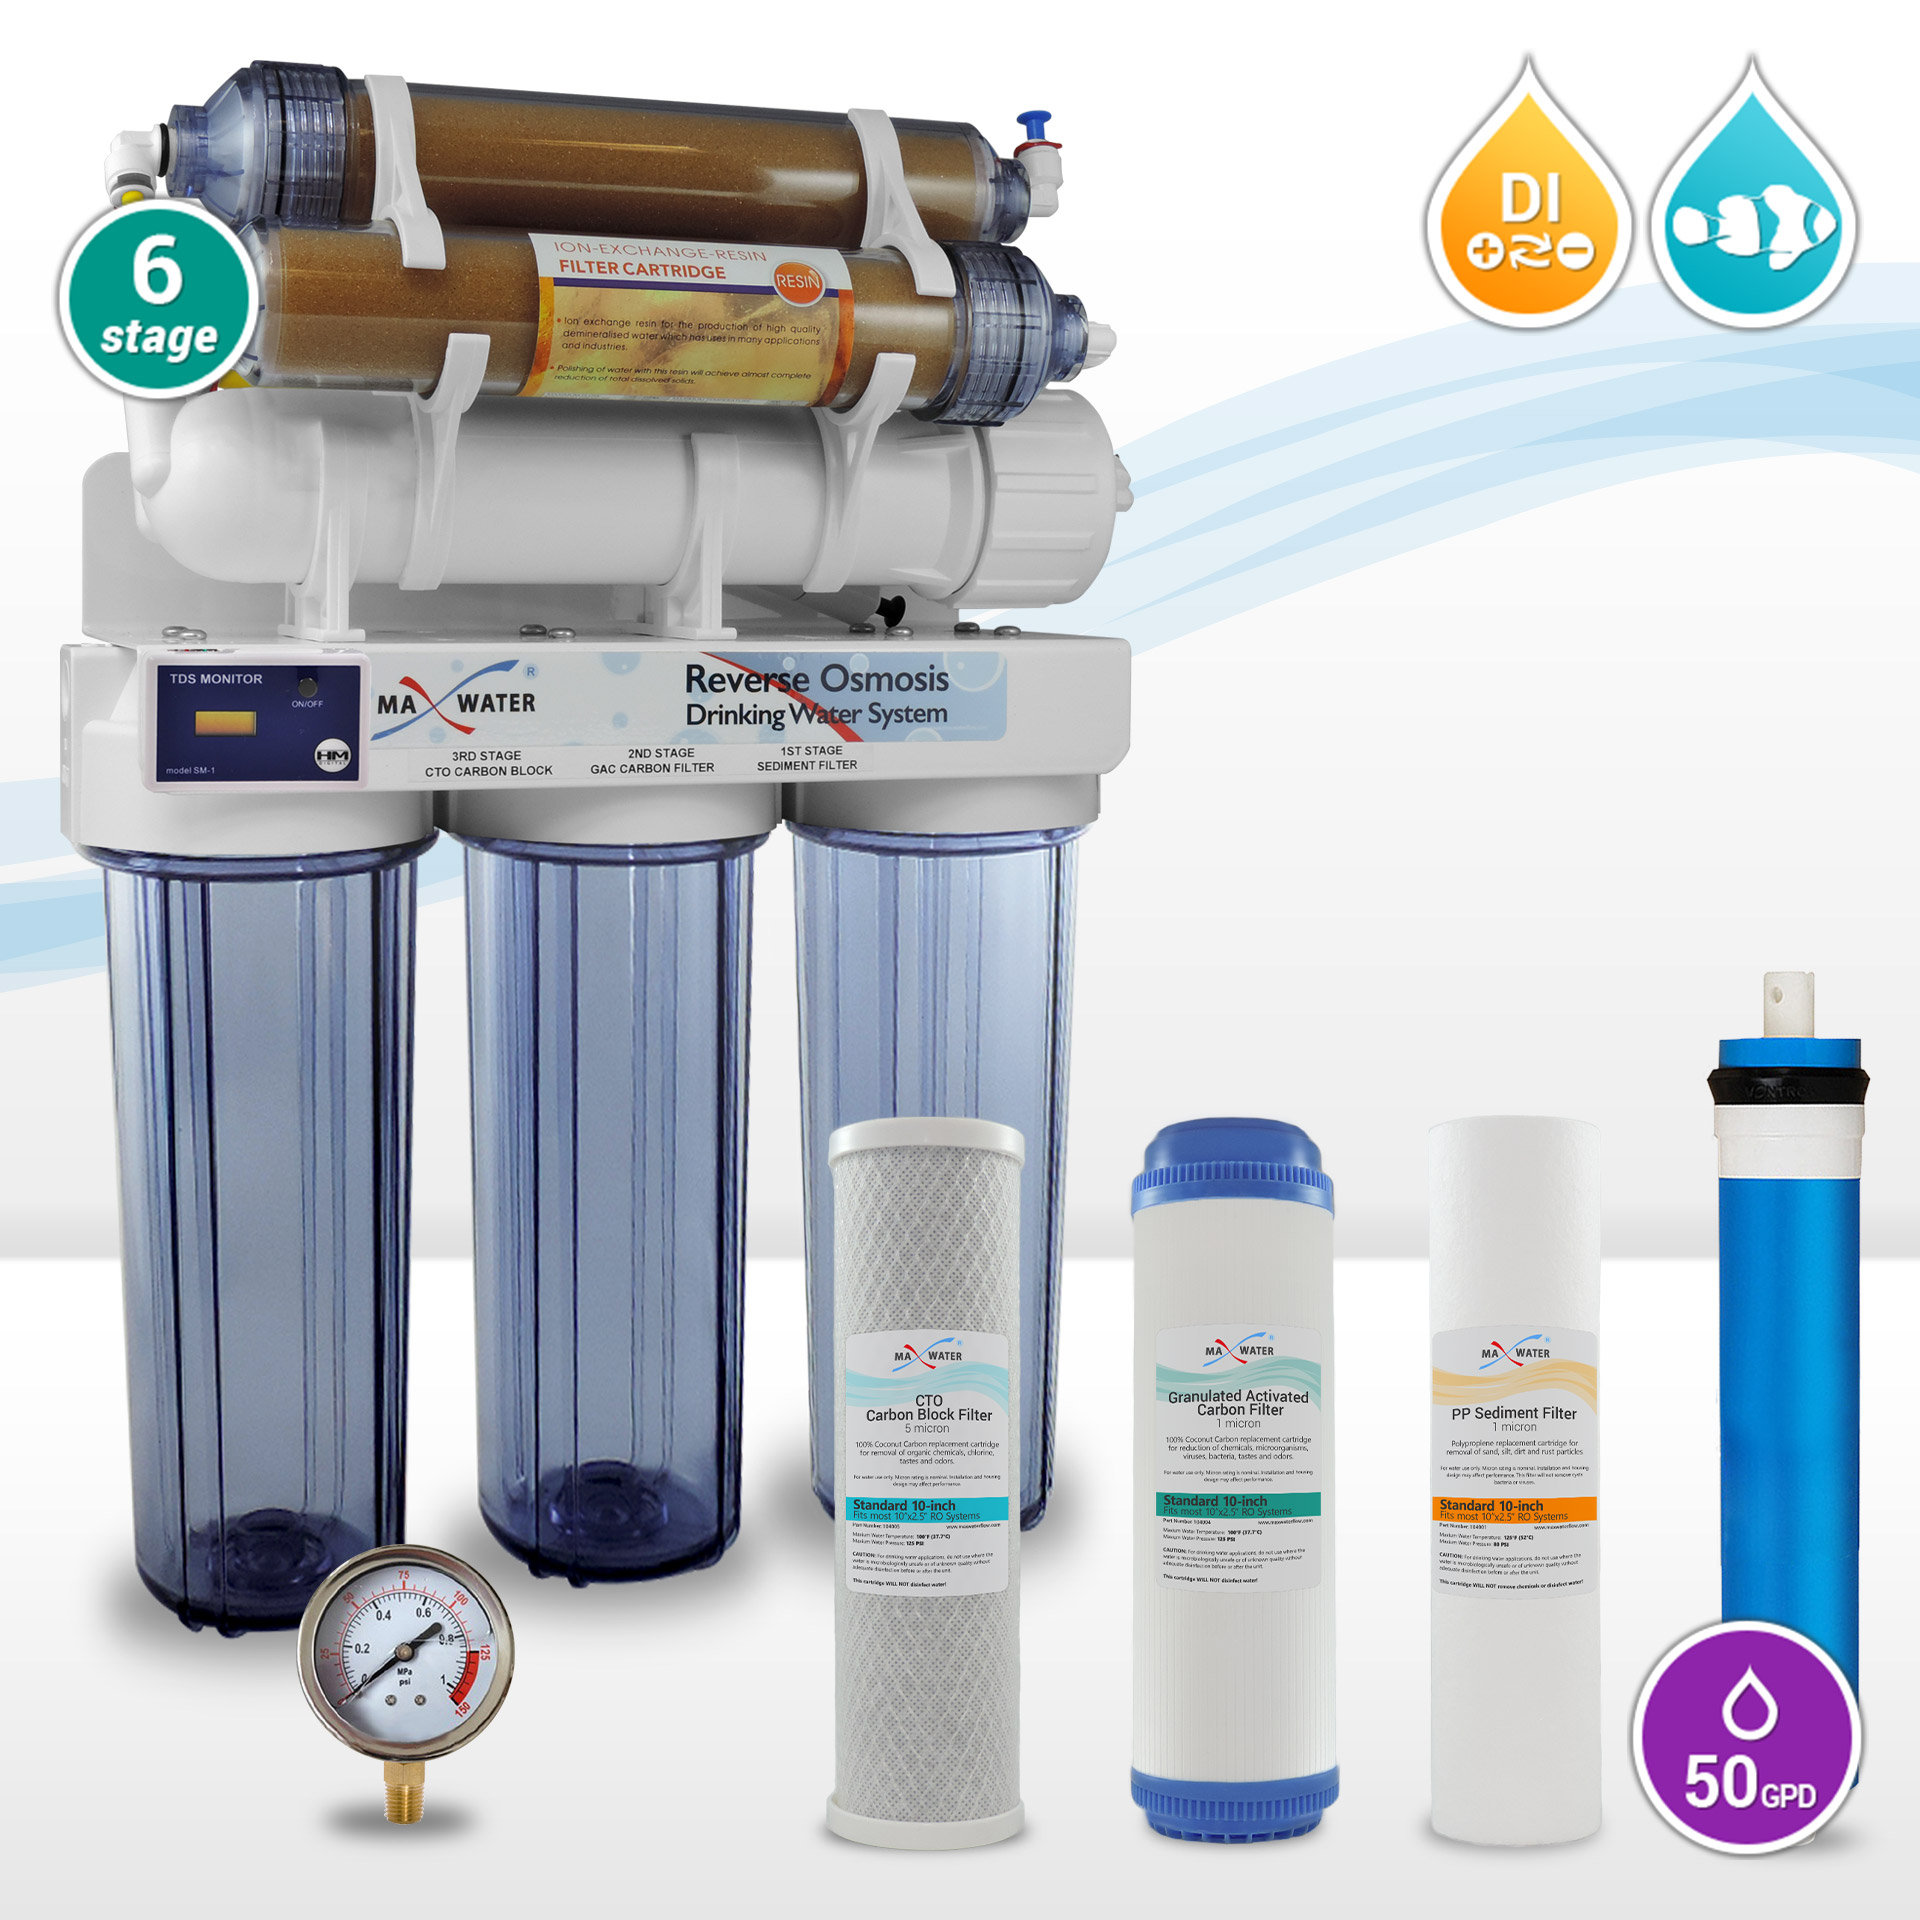 6 stage Aquarium Reverse Osmosis System RO DI with HM Inline TDS